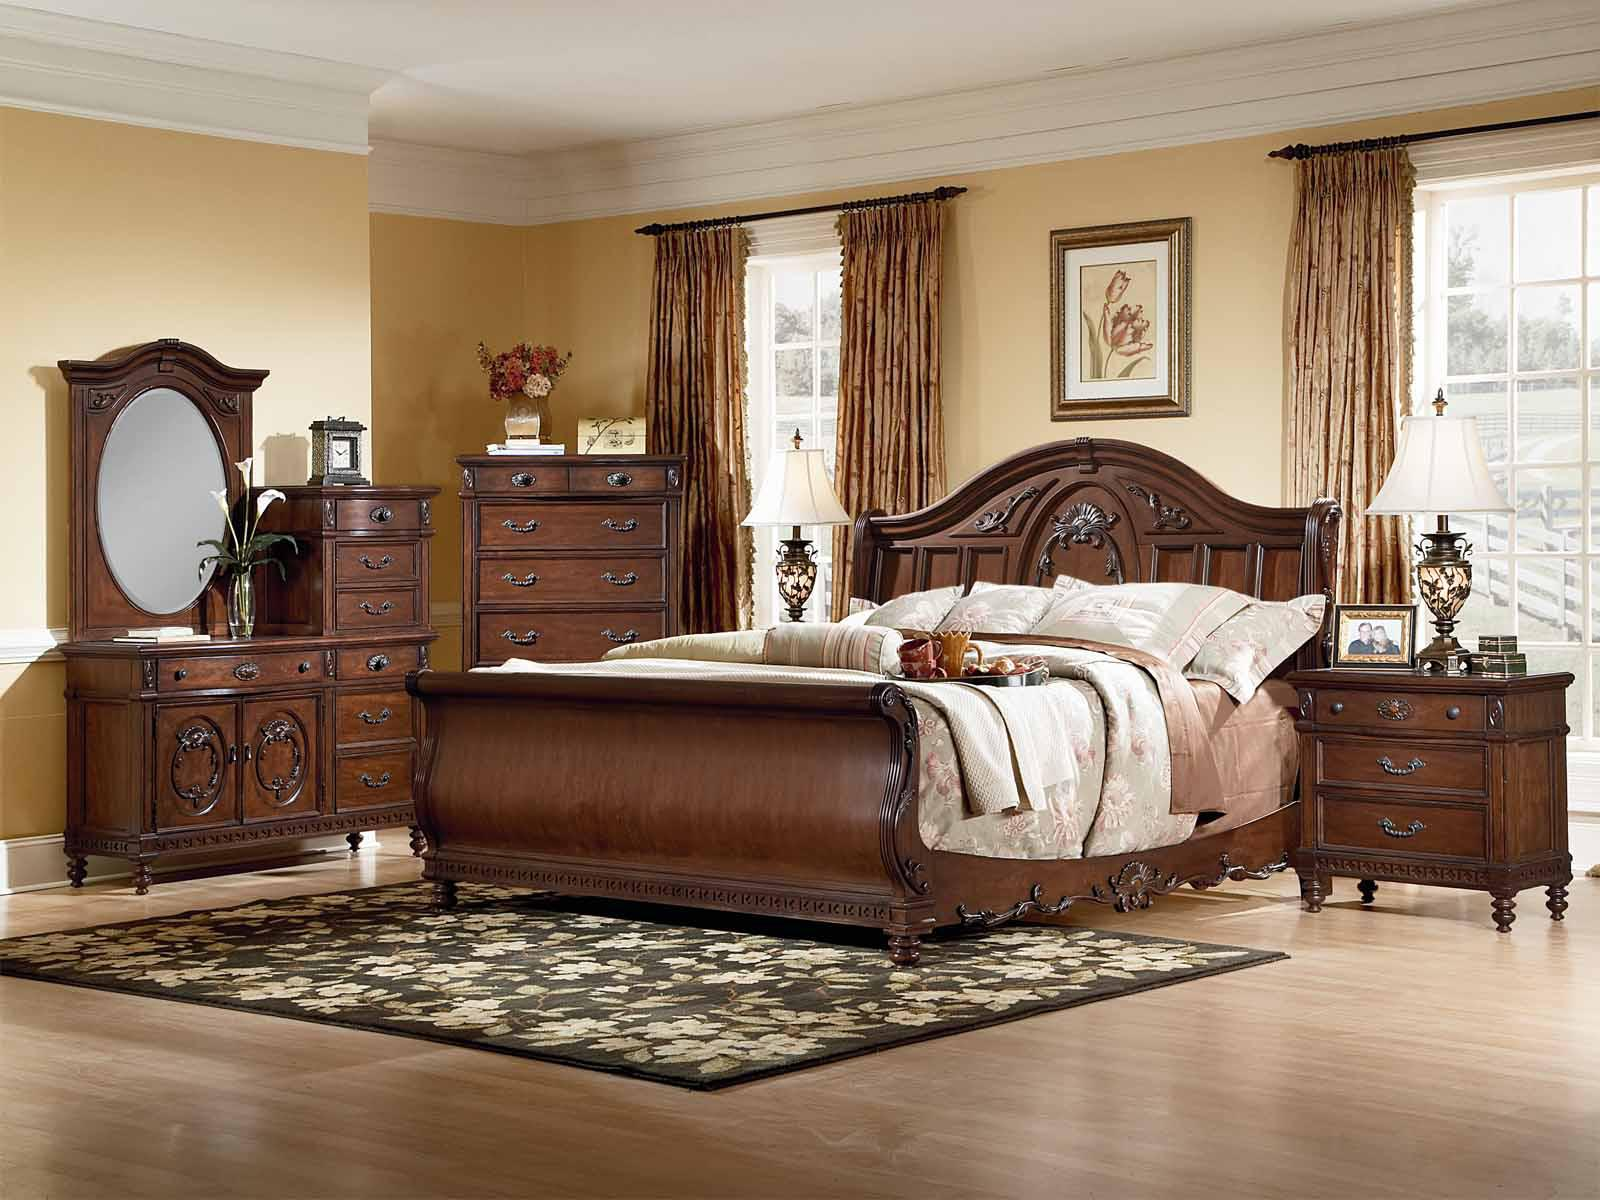 Image of: Sleigh Bedroom Sets South Africa